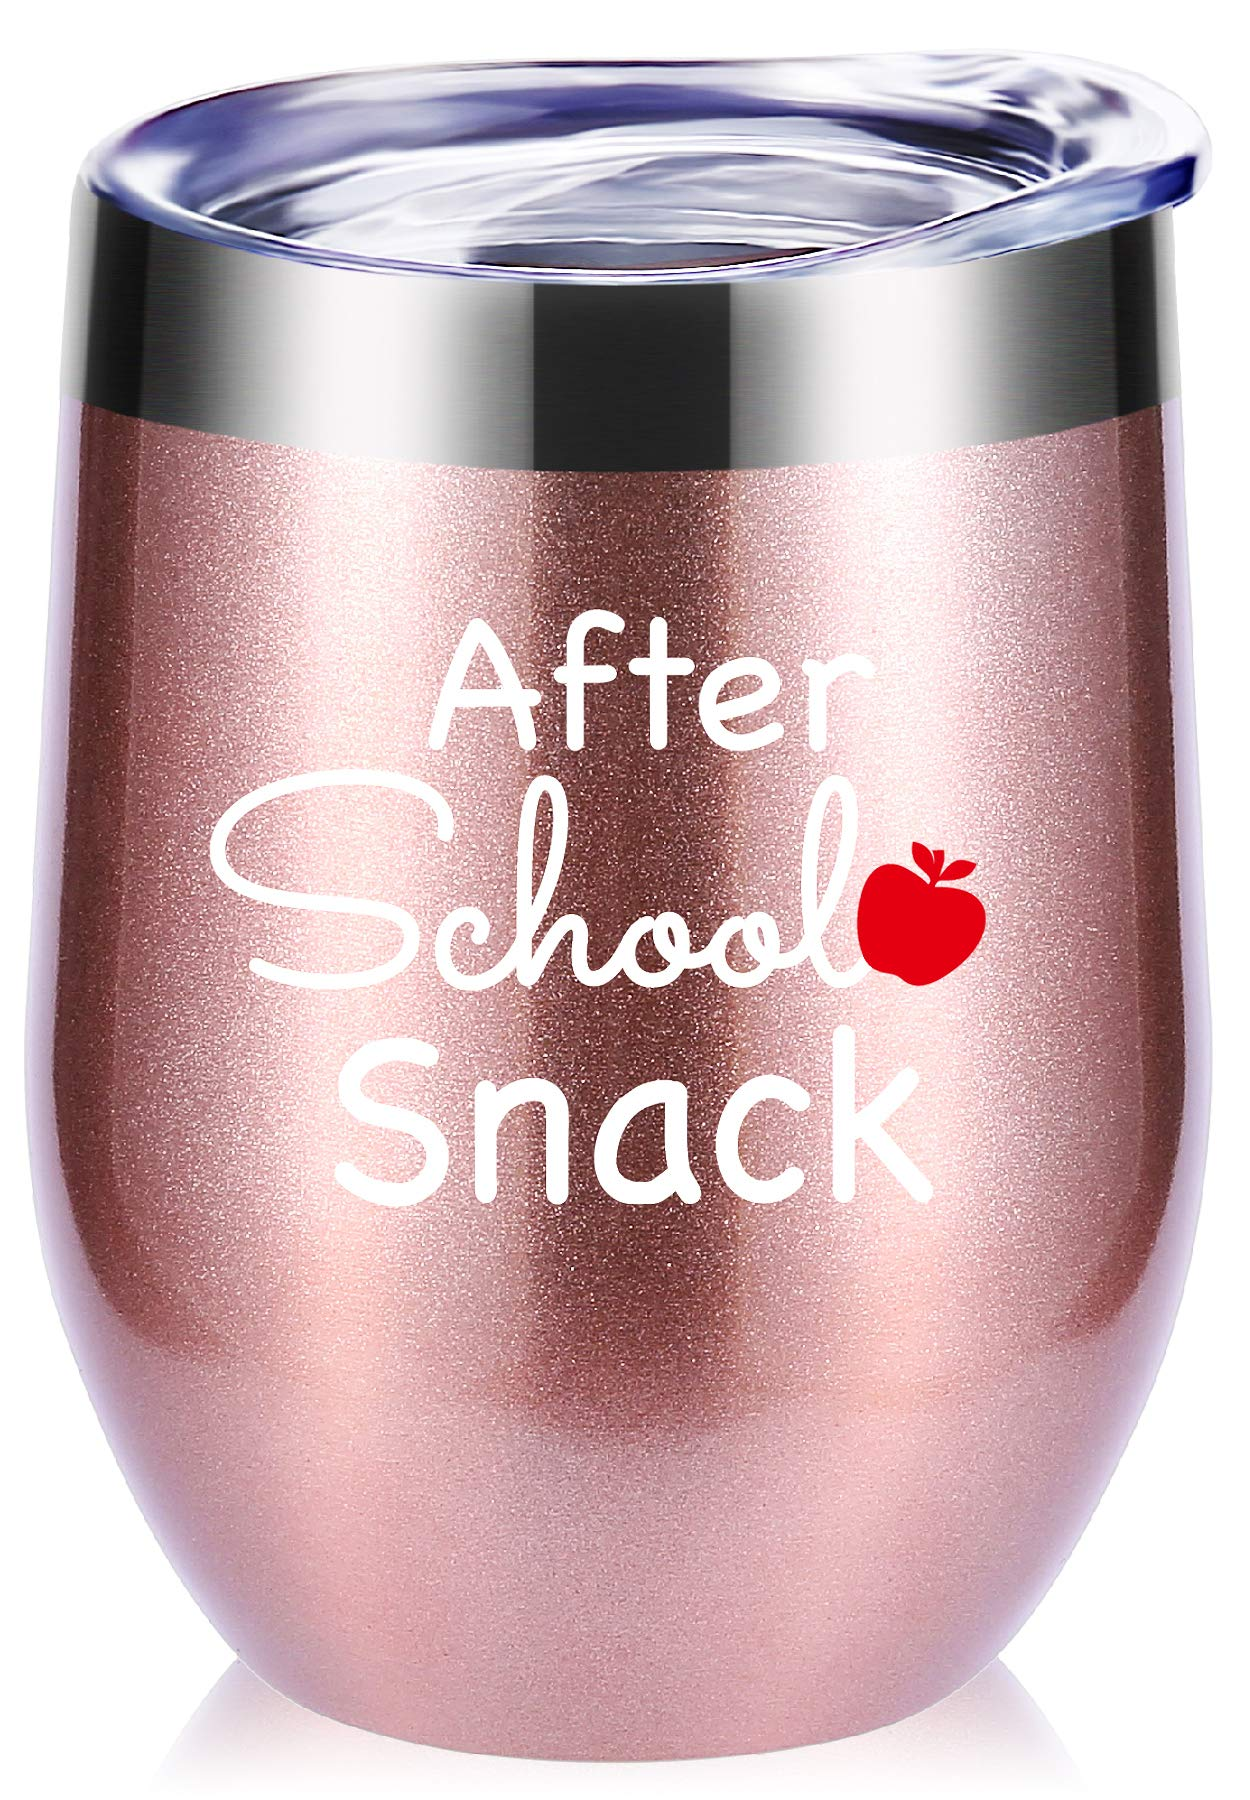 Teacher Gifts.After School Snack Wine Glasses Tumbler With Funny Sayings.Perfect Year End Graduation Gifts,Thank You Gifts for Teachers,Teacher Appreciation Gifts Mug by momocici (Image #1)